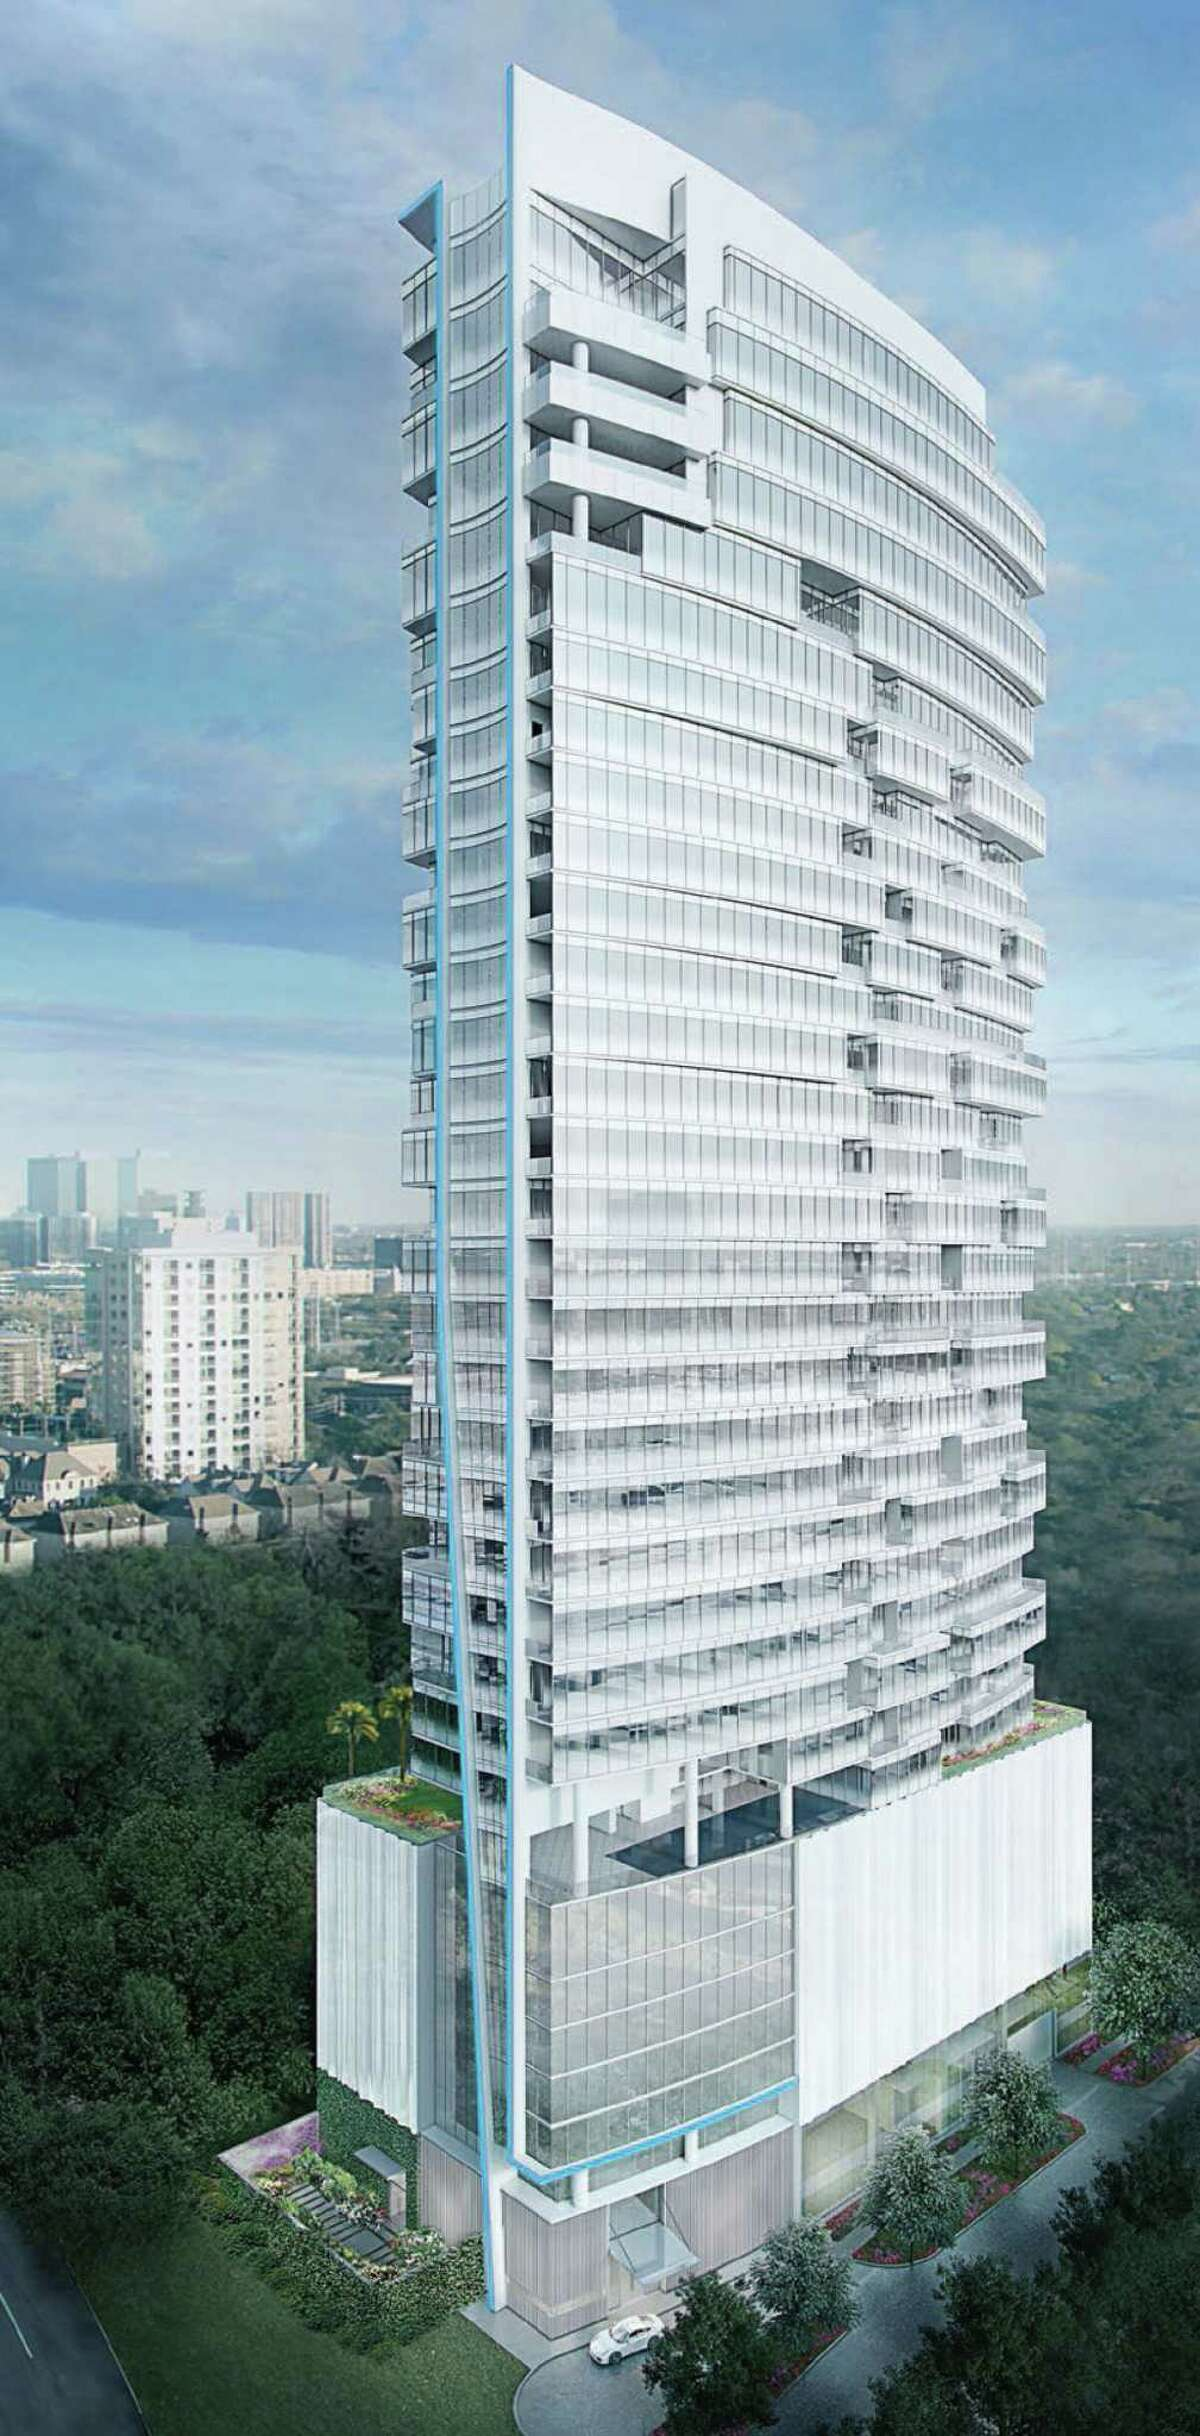 Powers Brown Architecture, which has submitted plans for a 21-story tower in San Antonio, helped design the 33-story Arabella condominium tower in Houston.